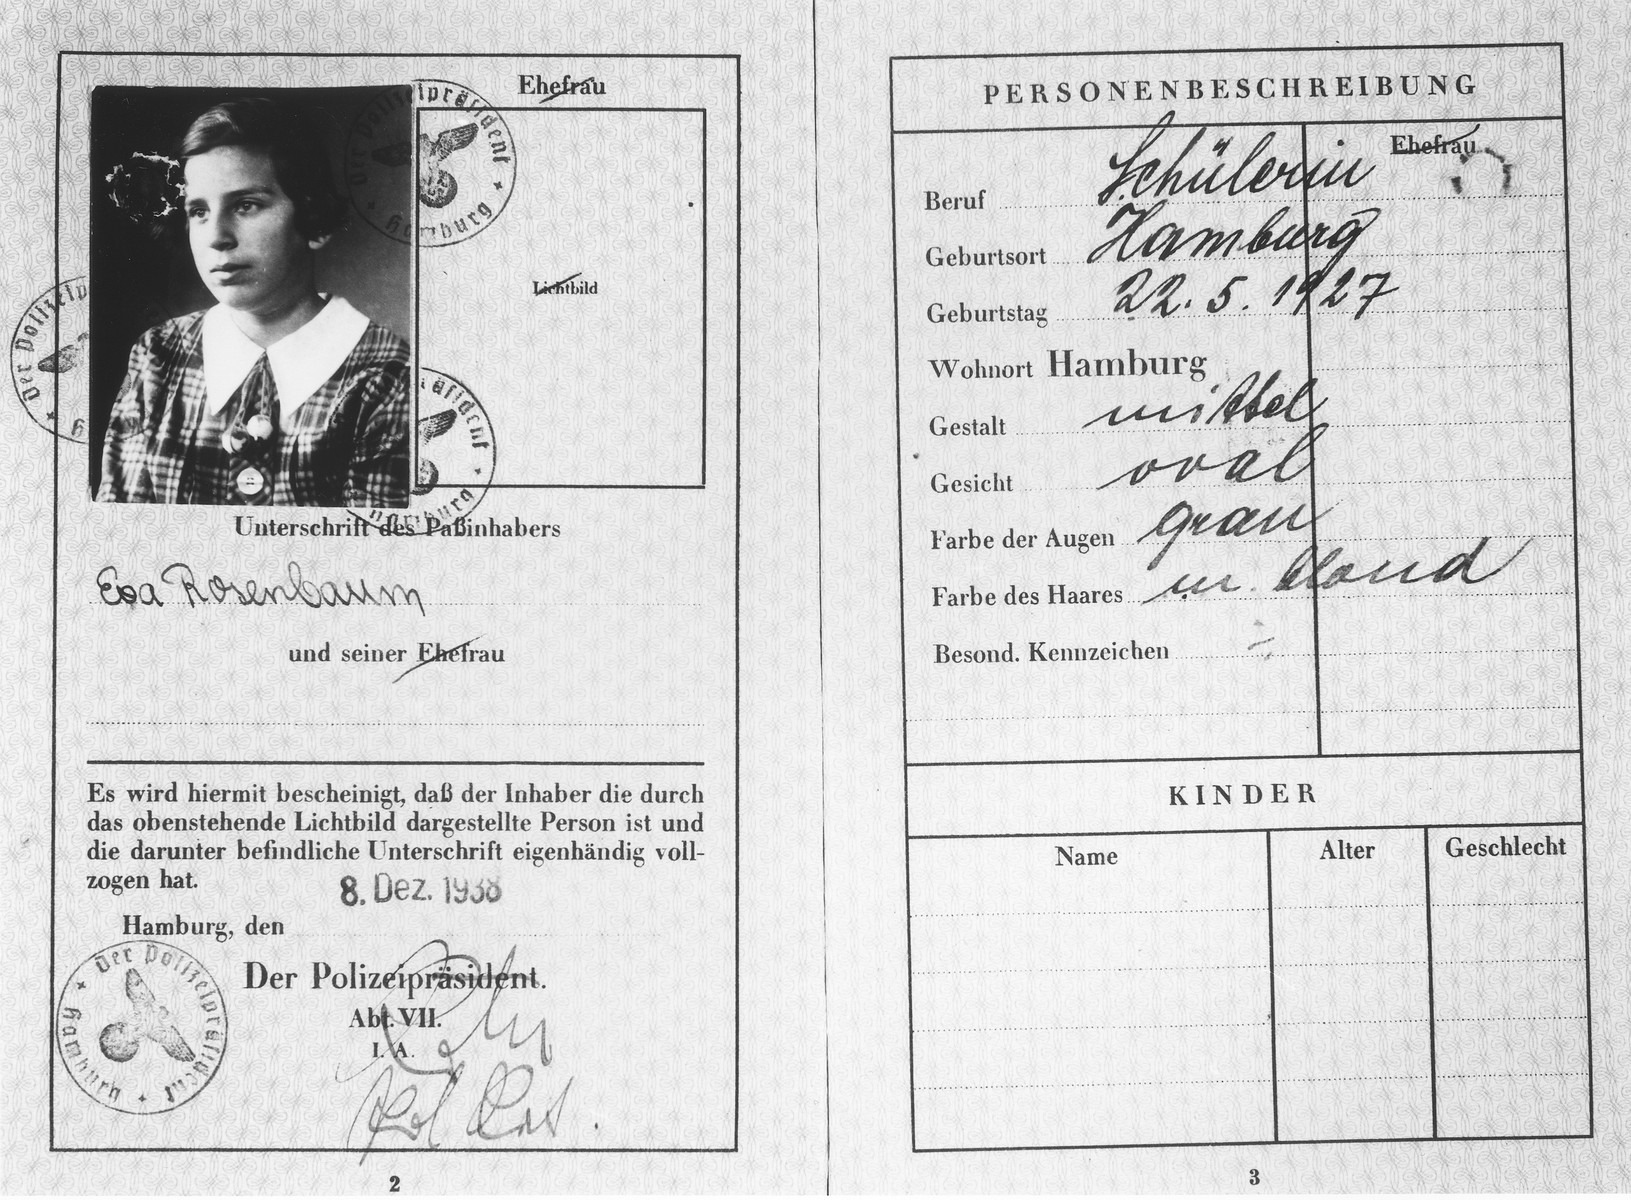 Passport issued to Eva Rosenbaum a few days before she left on a Kindertransport to England.